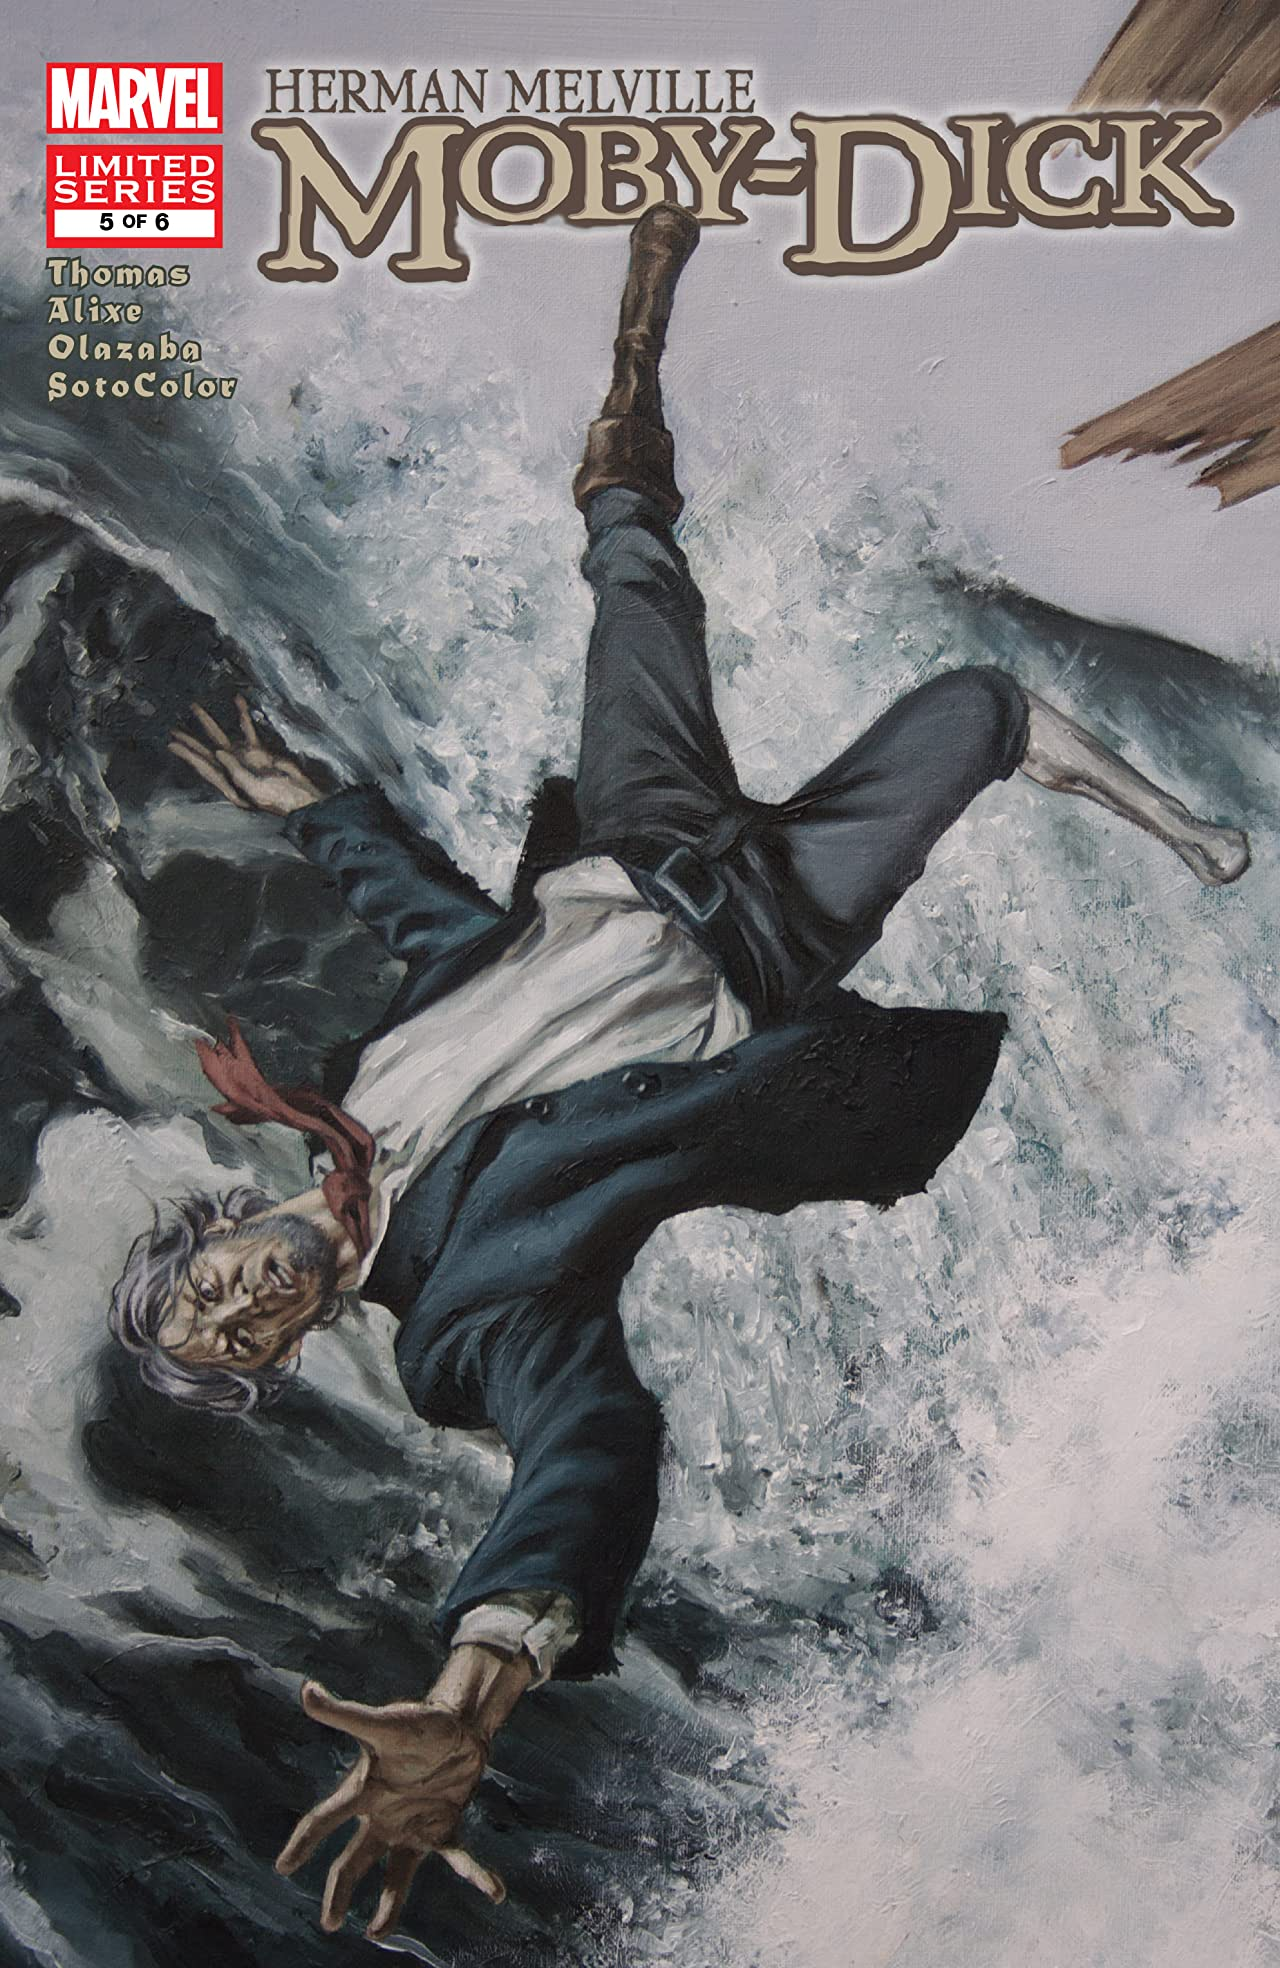 Marvel Illustrated: Moby Dick (2008) #5 (of 6)